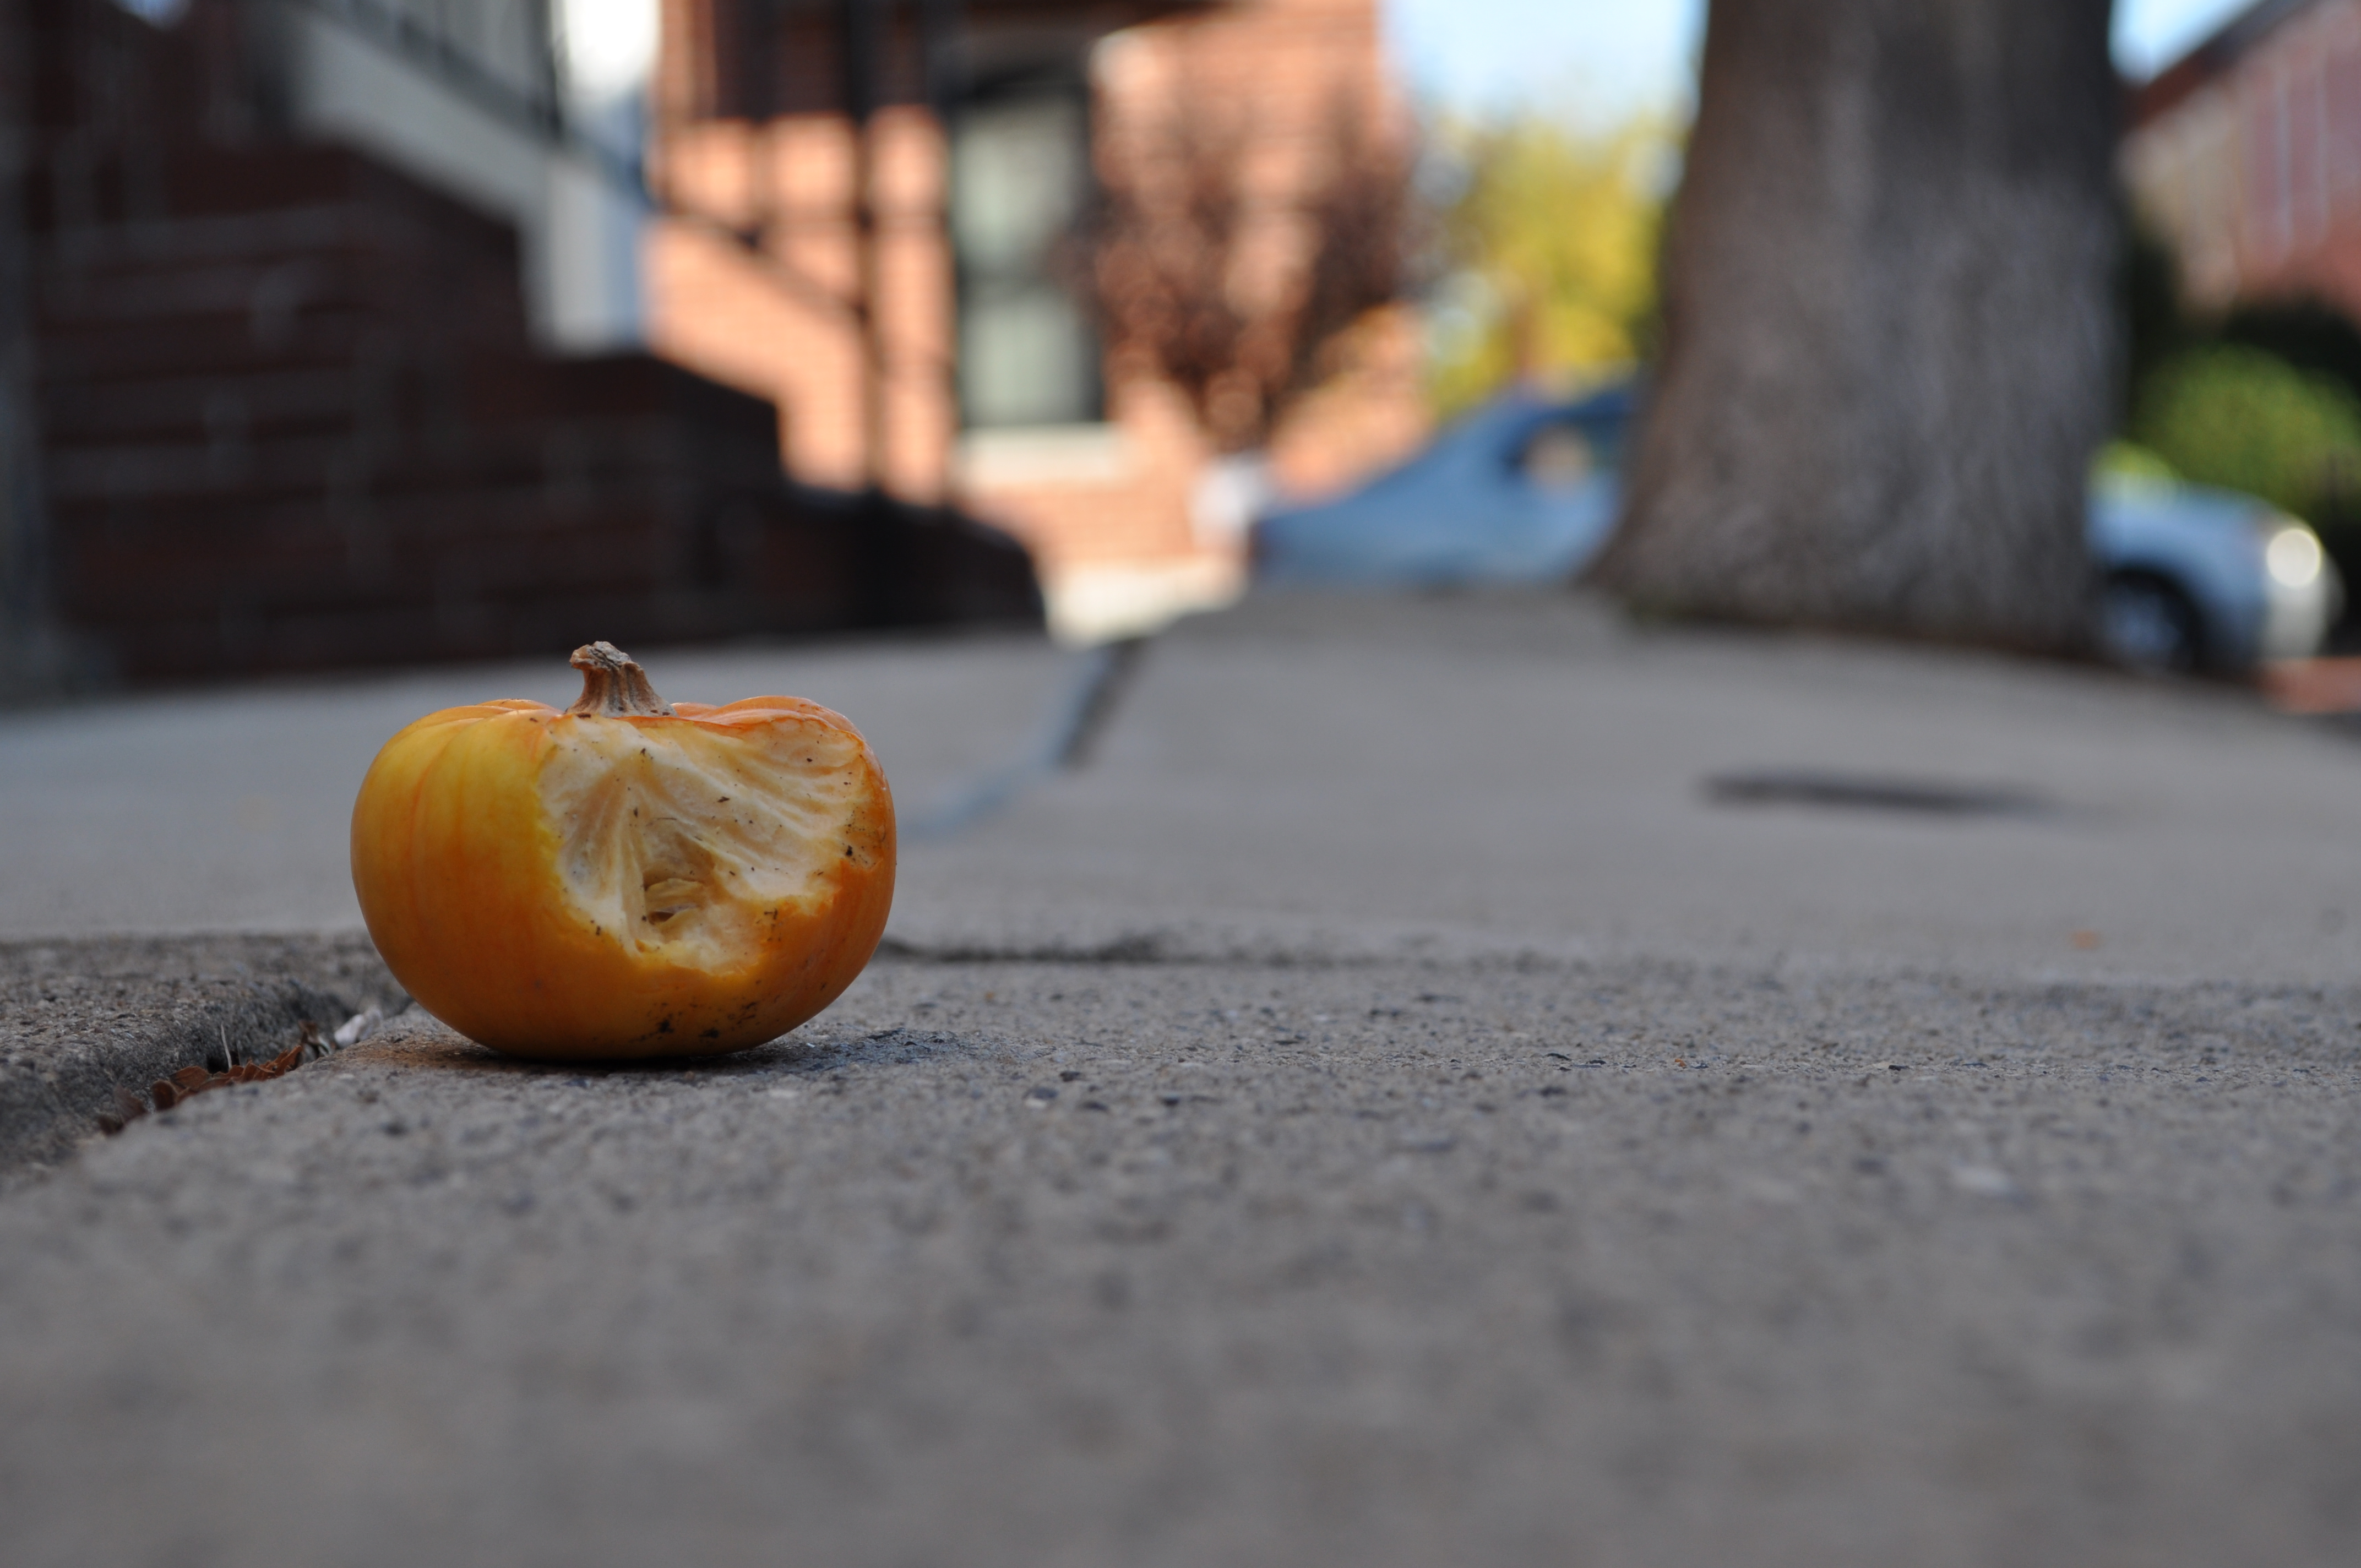 A small, busted pumpkin rests on the sidewalk outside of a home on Fitzwater Street.